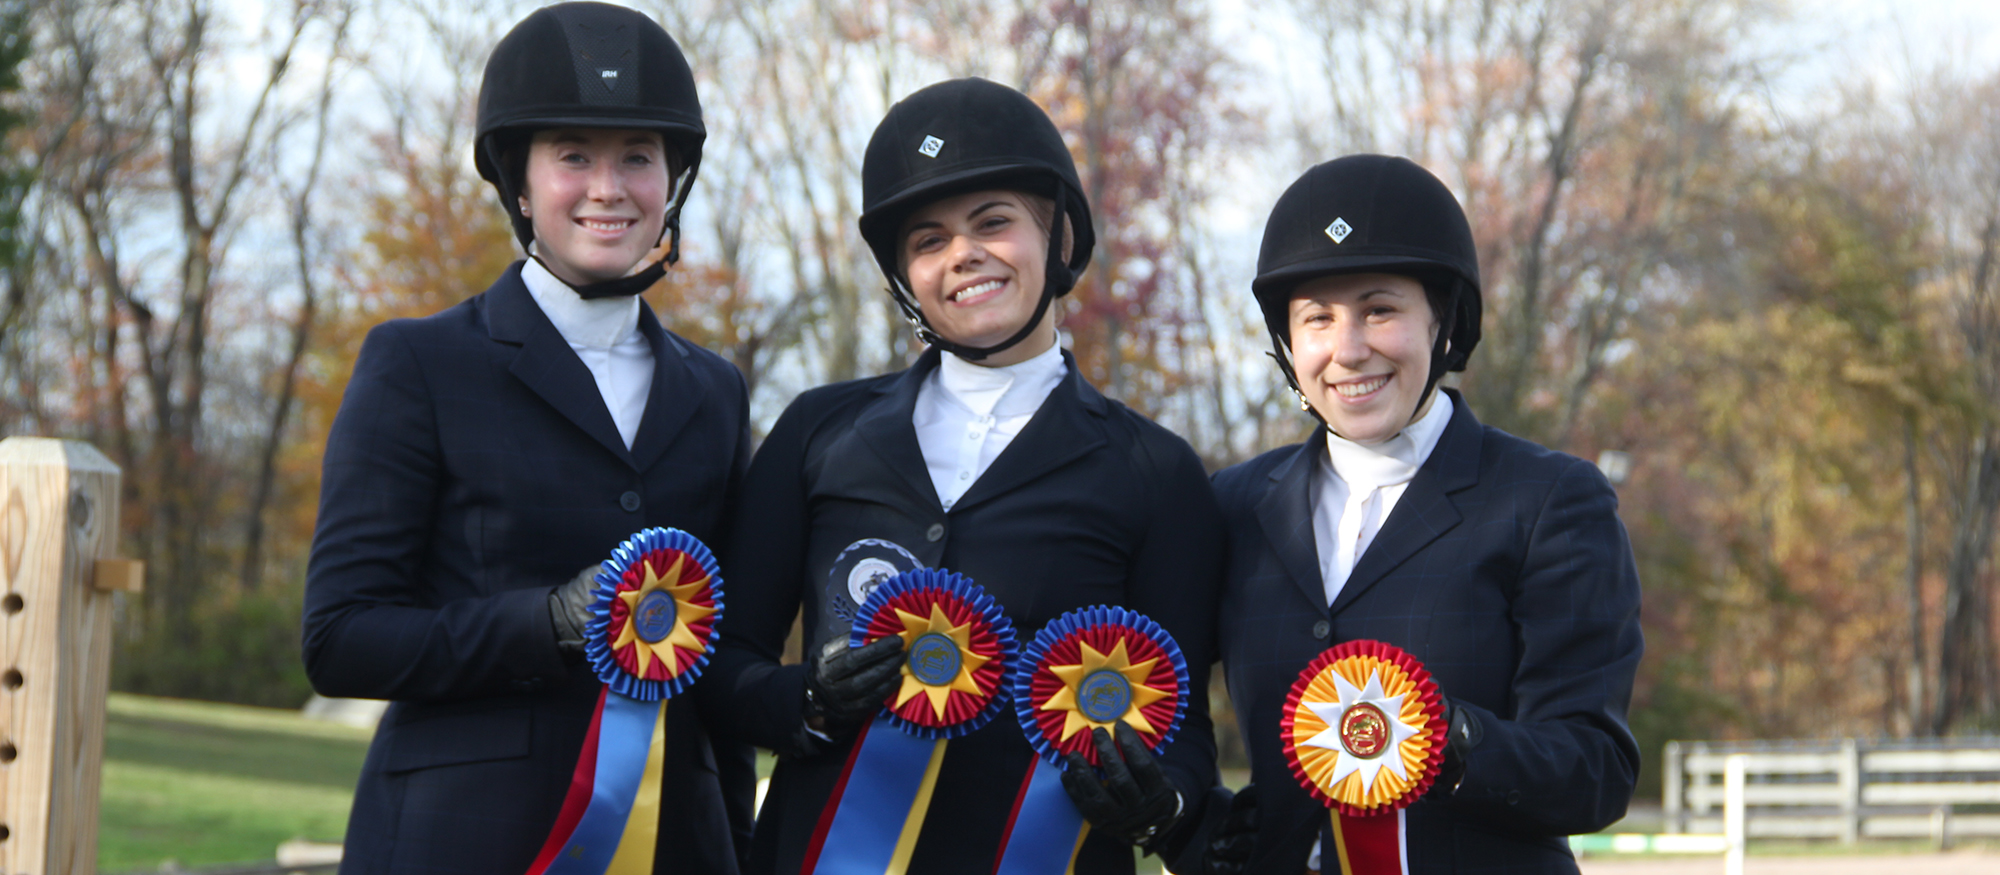 Photo featuring Lyons riders (from left to right): Anna Rzchowski, Libby Sams and Kaziah Brachfeld, who all earned individual honors at the October 28 home show at the MHC Equestrian Center.